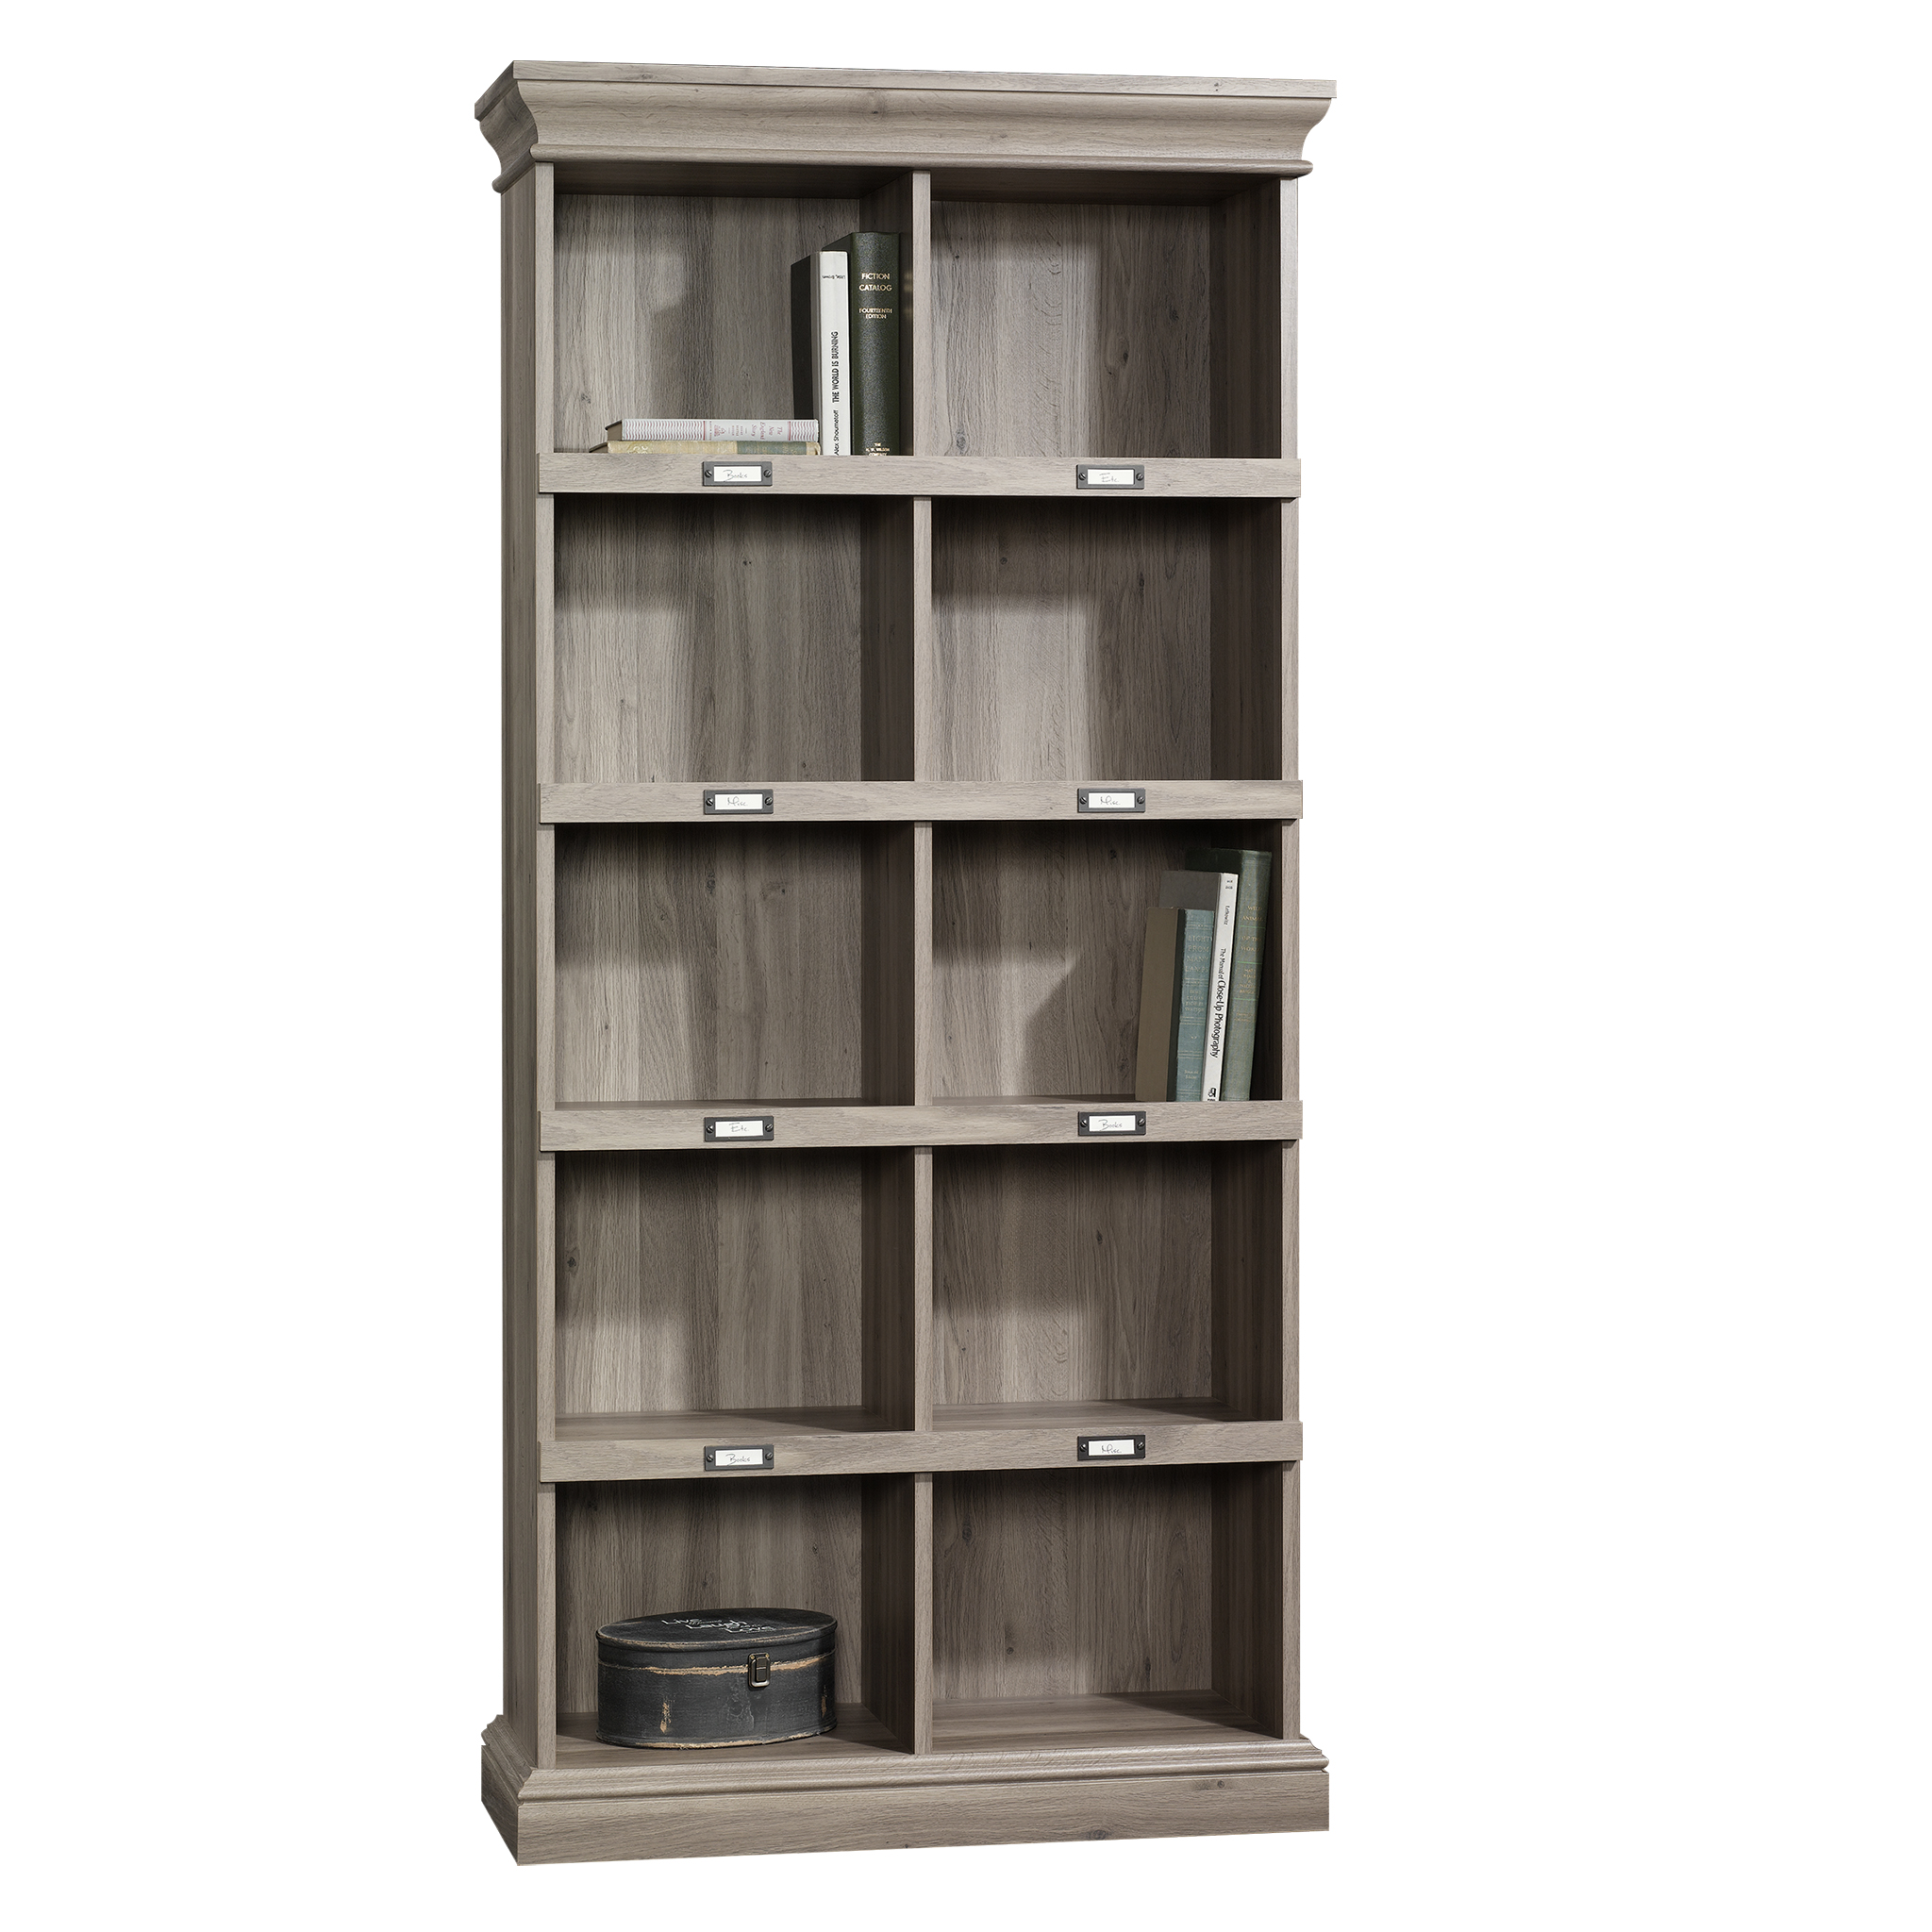 Sauder Barrister Lane Tall Bookcase, Multiple Finishes